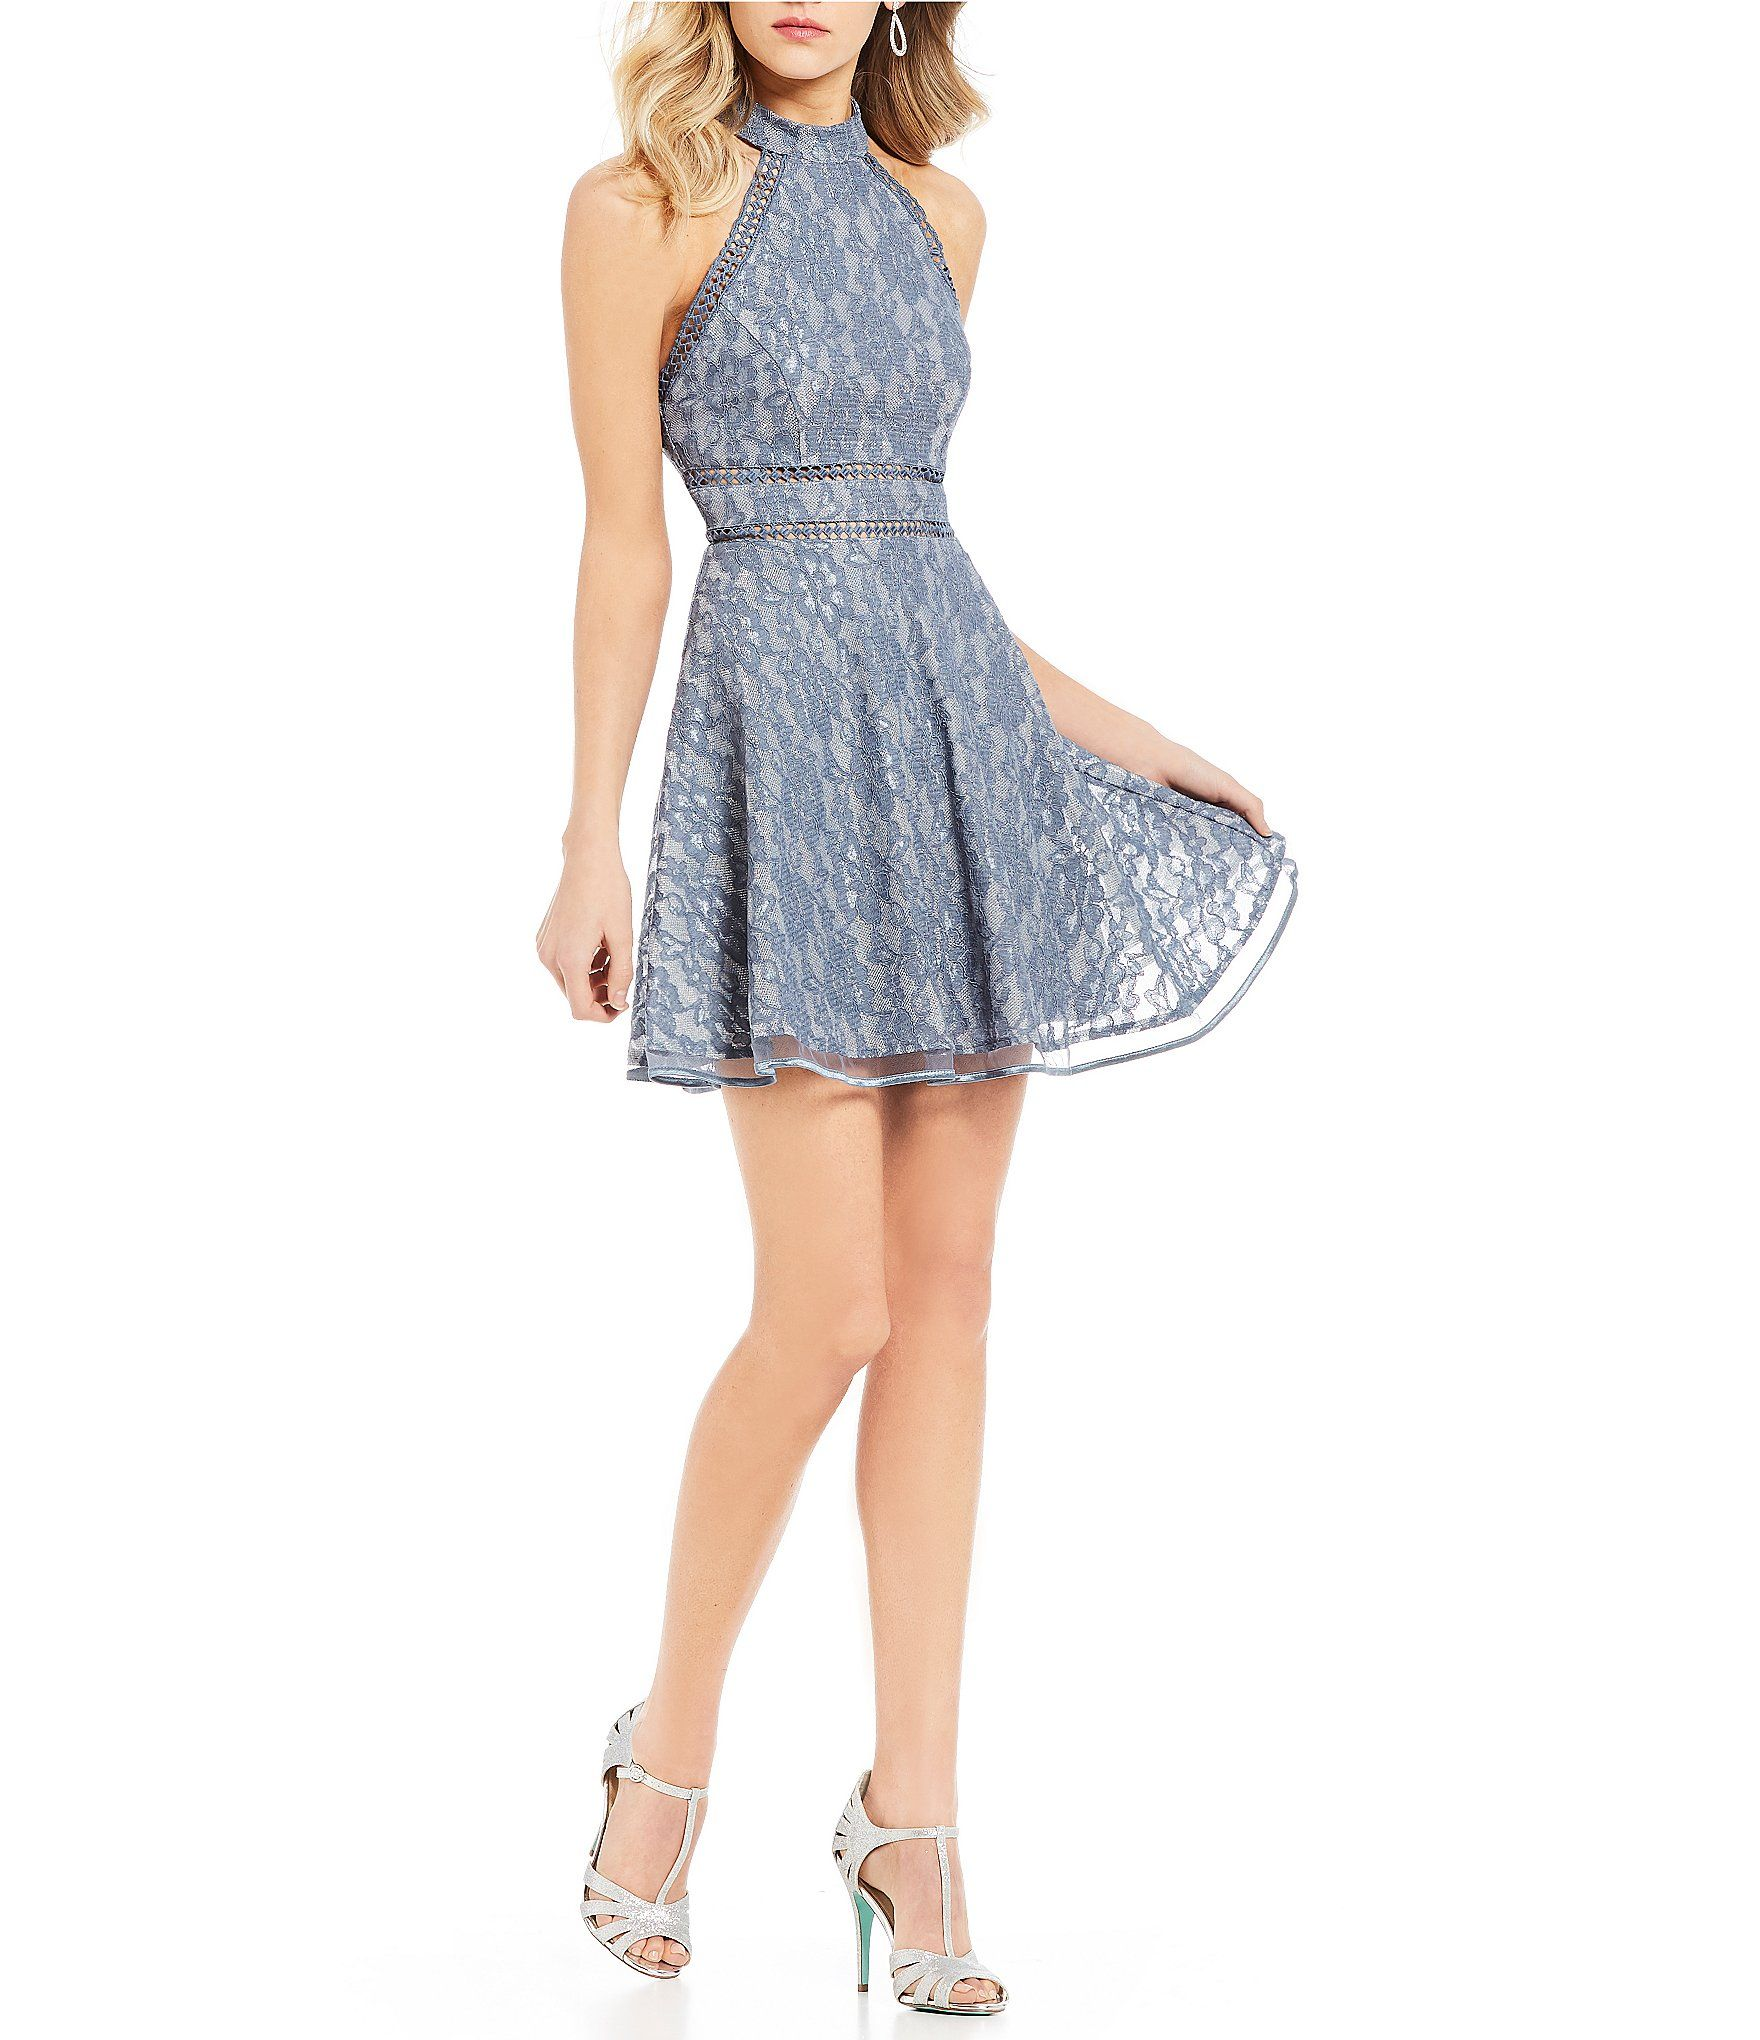 5baf7b28e5 Shop for Jodi Kristopher Foiled Lace Fit-And-Flare Dress at Dillards ...